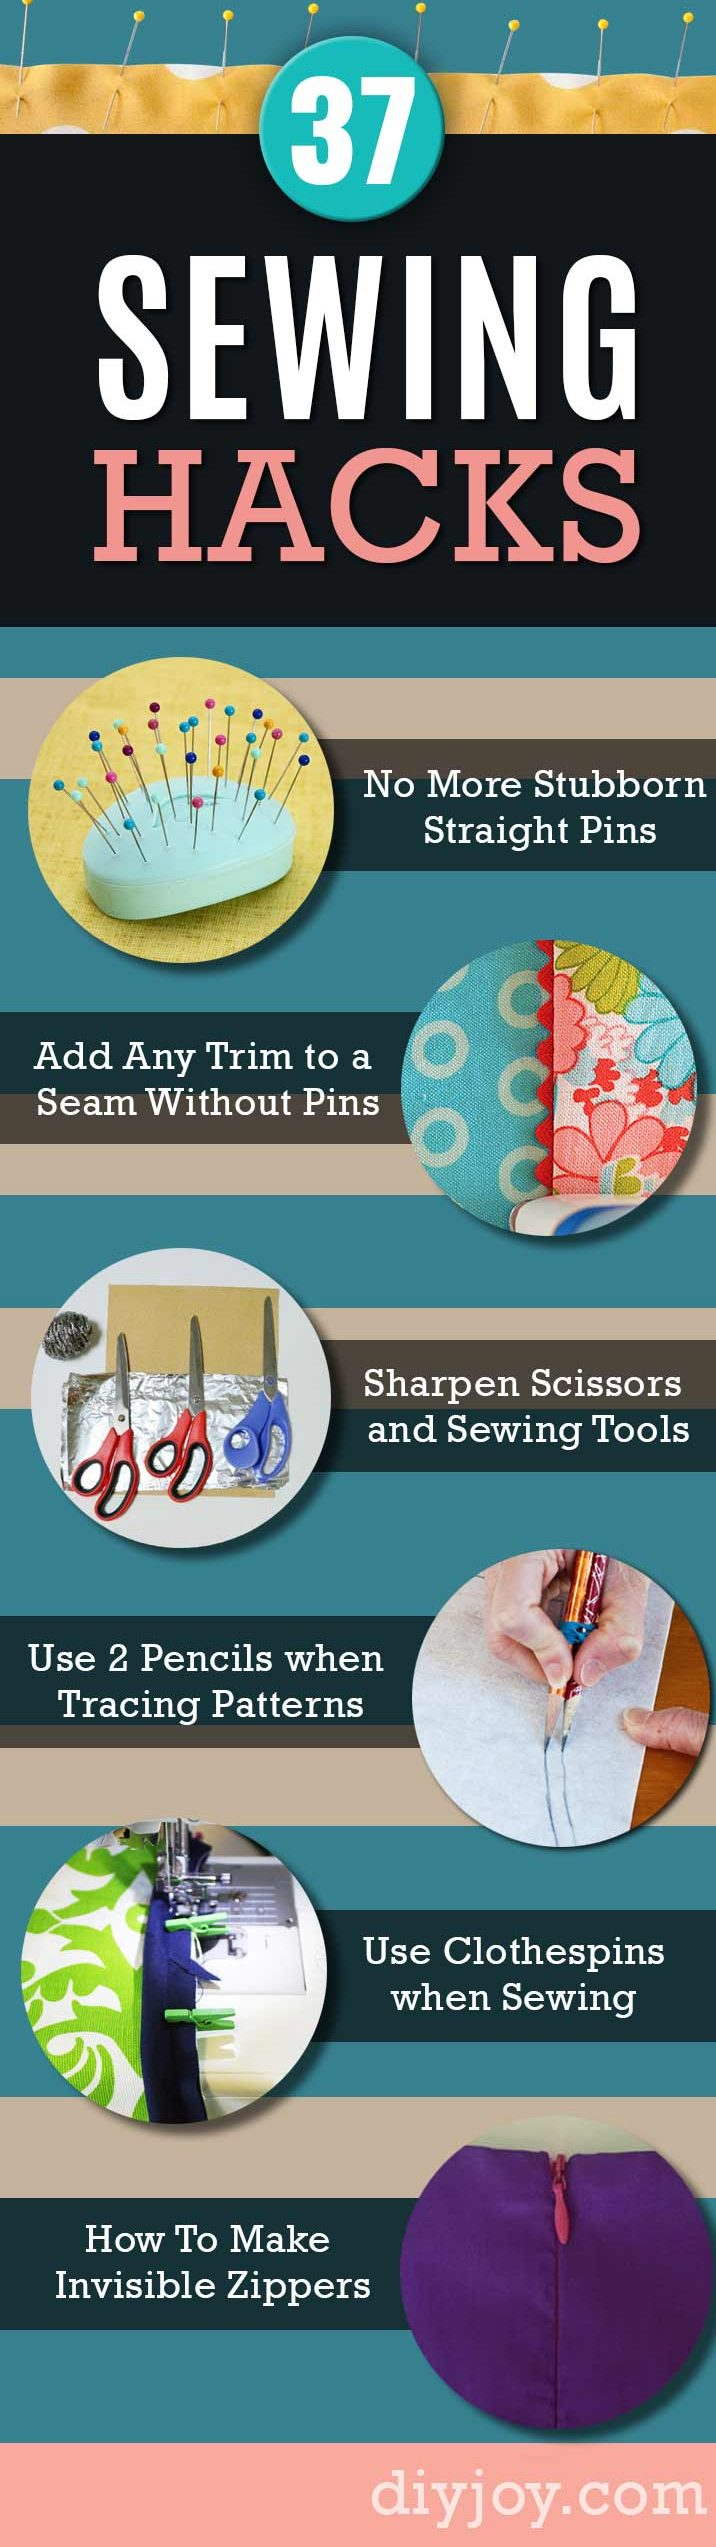 Sewing Hacks   Best Tips and Tricks for Sewing Patterns, Projects, Machines, Hand Sewn Items. Clever Ideas for Beginners and Even Experts   Use Mini Clothespins when Sewing Bindings and Piping  